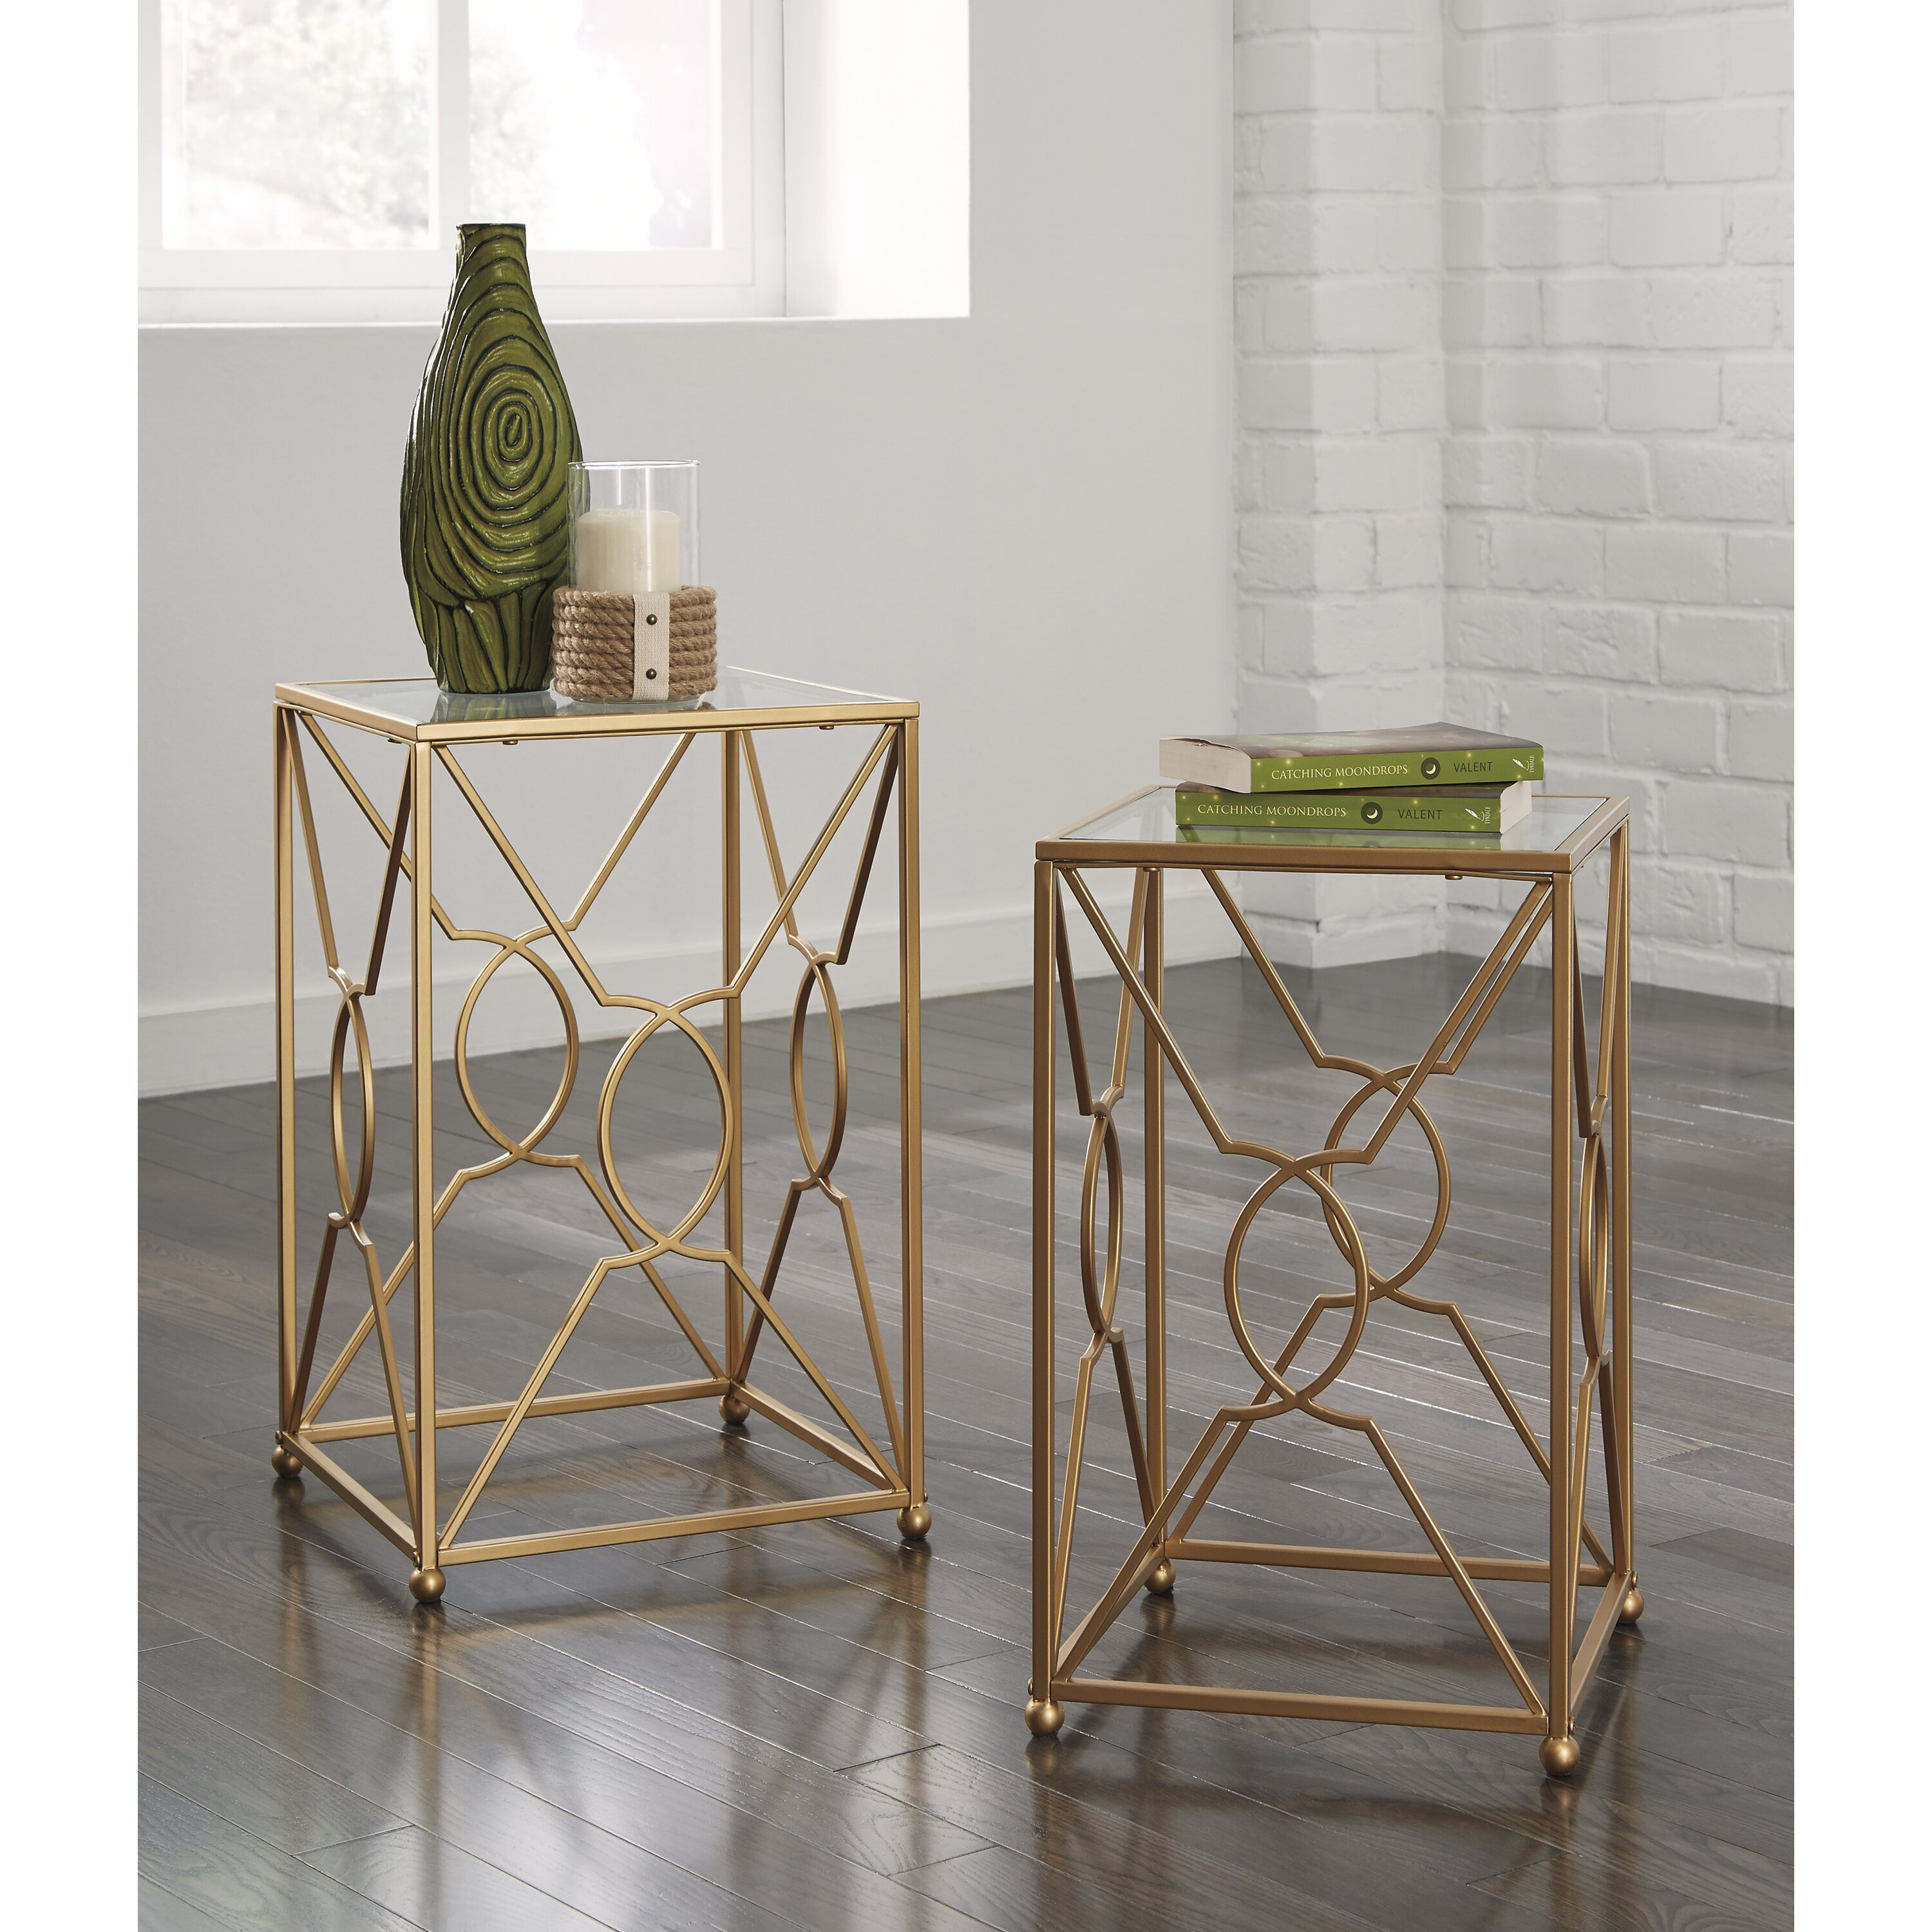 Ashley Mallacar Piece Coffee Table Set In Black T: Marxim 2 Piece End Table Set